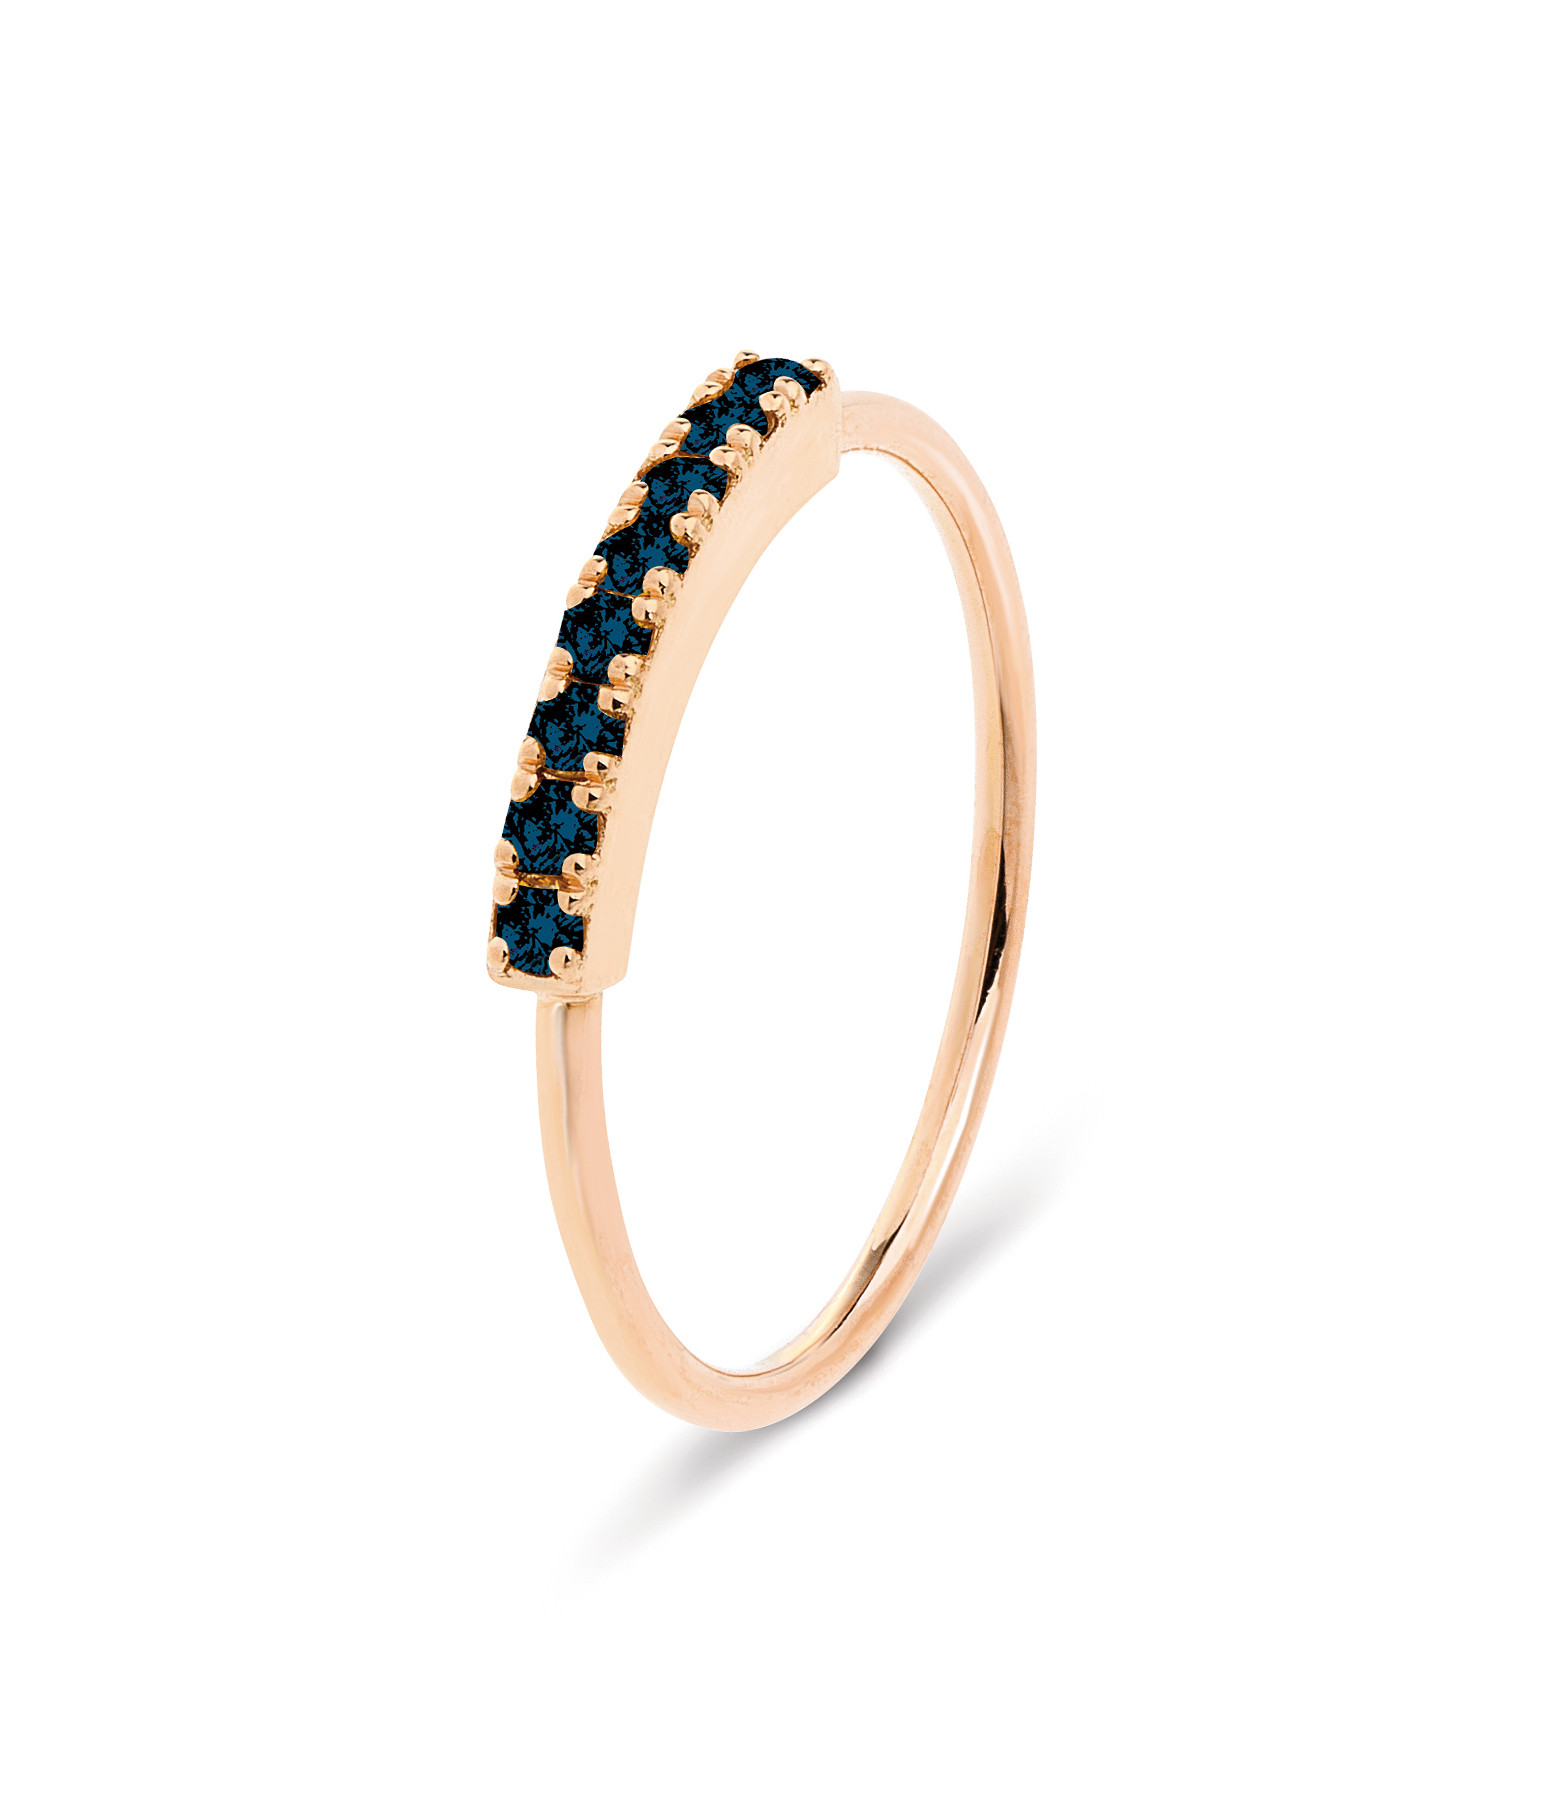 NAVA JOAILLERIE - Bague Demi-Alliance Hash Diamants Noirs Or Rose